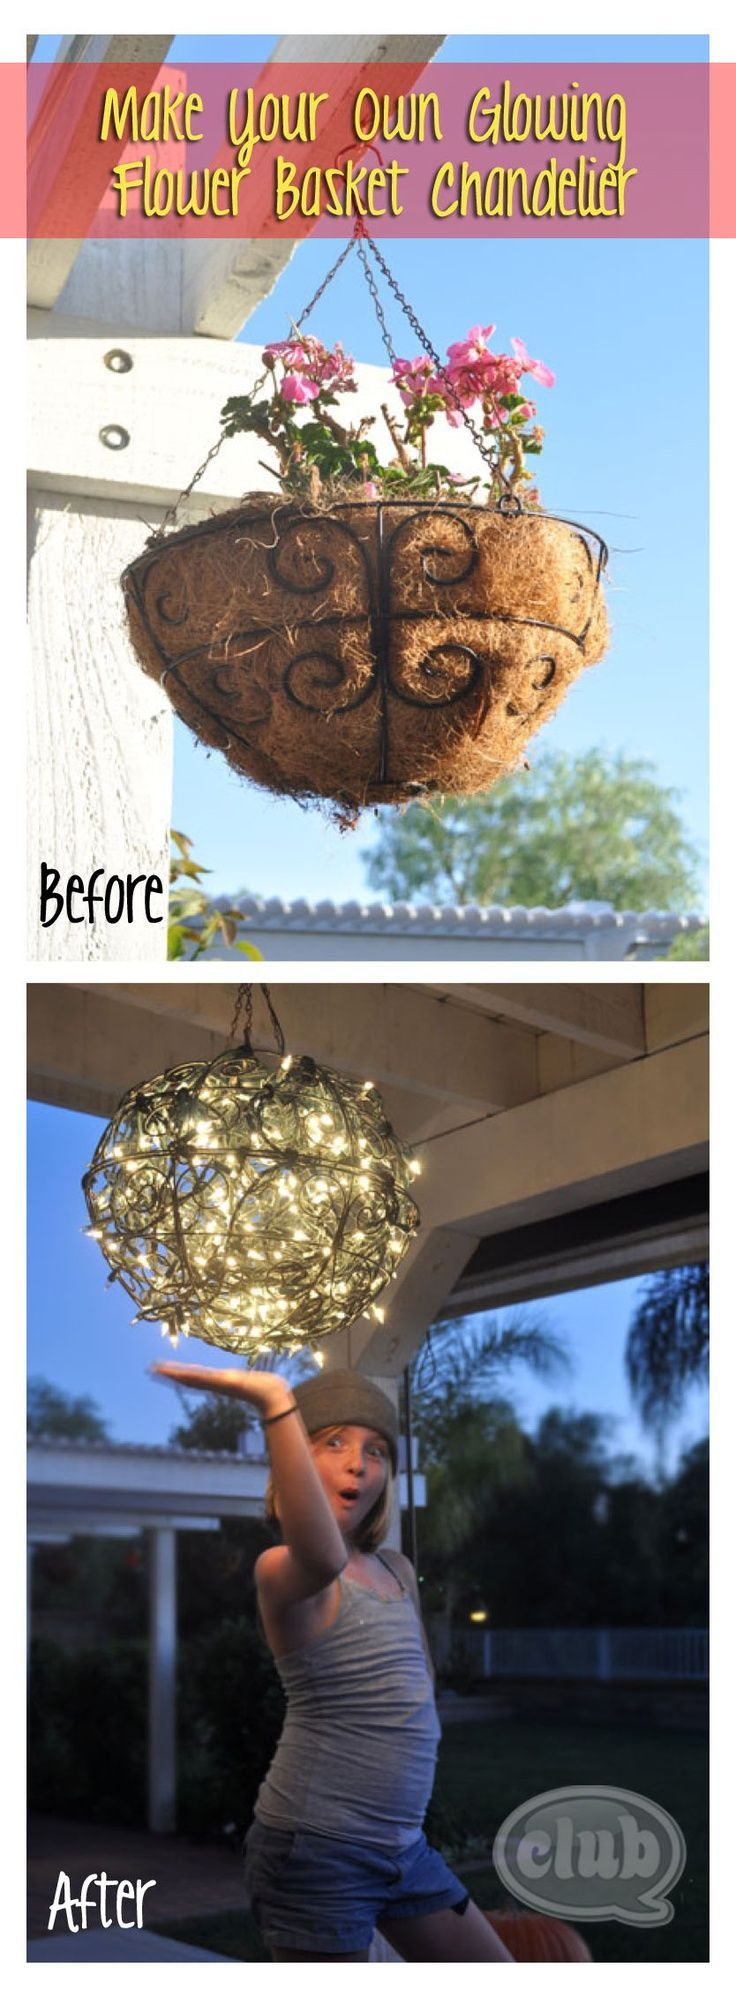 wire two flower baskets together and add white lights to create a round chandelier